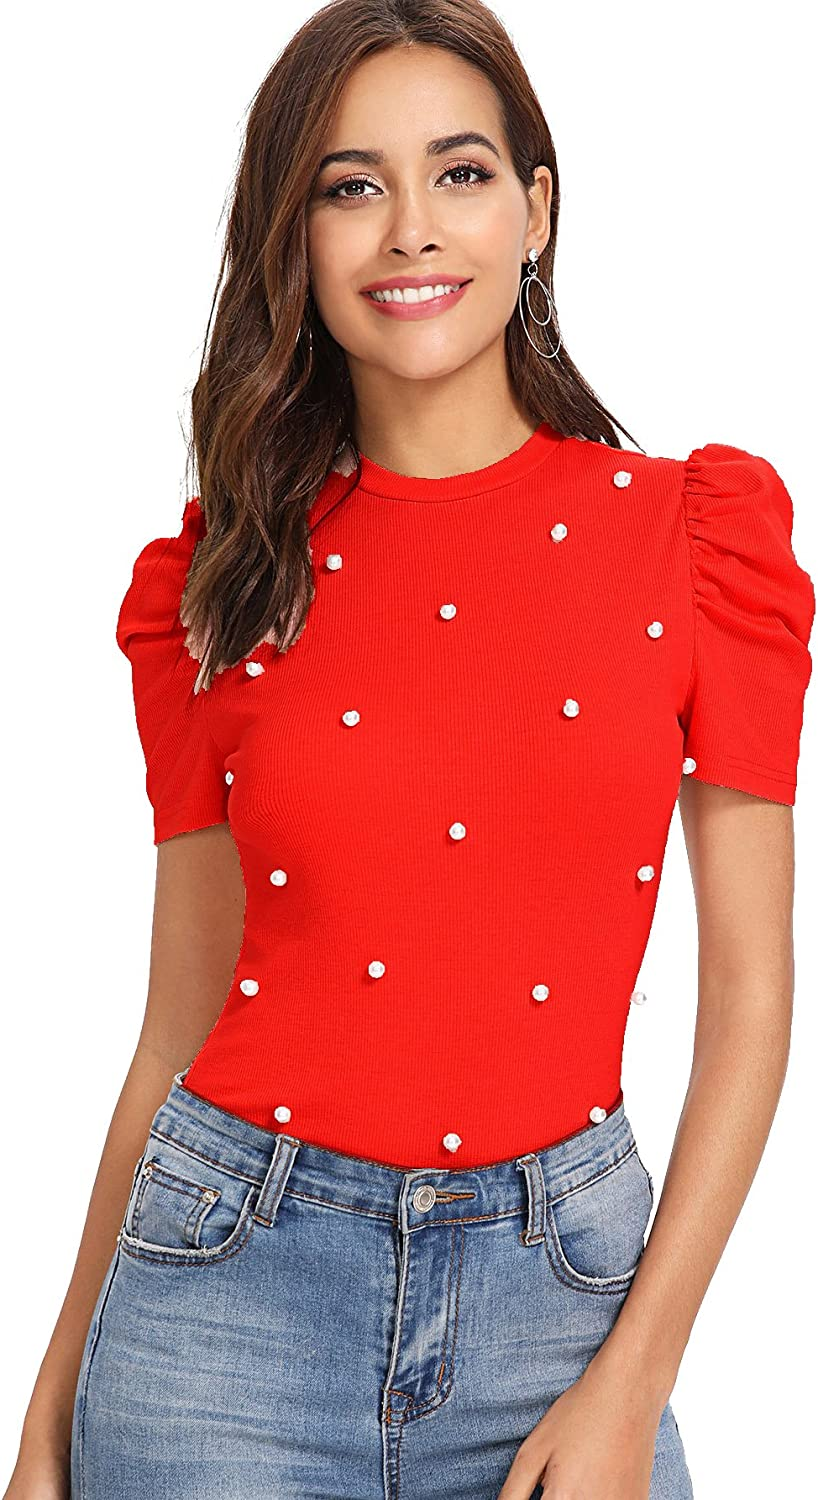 ROMWE Womens Elegant Pearl Embellished Puff Short Sleeve Embroidered Blouse Tops